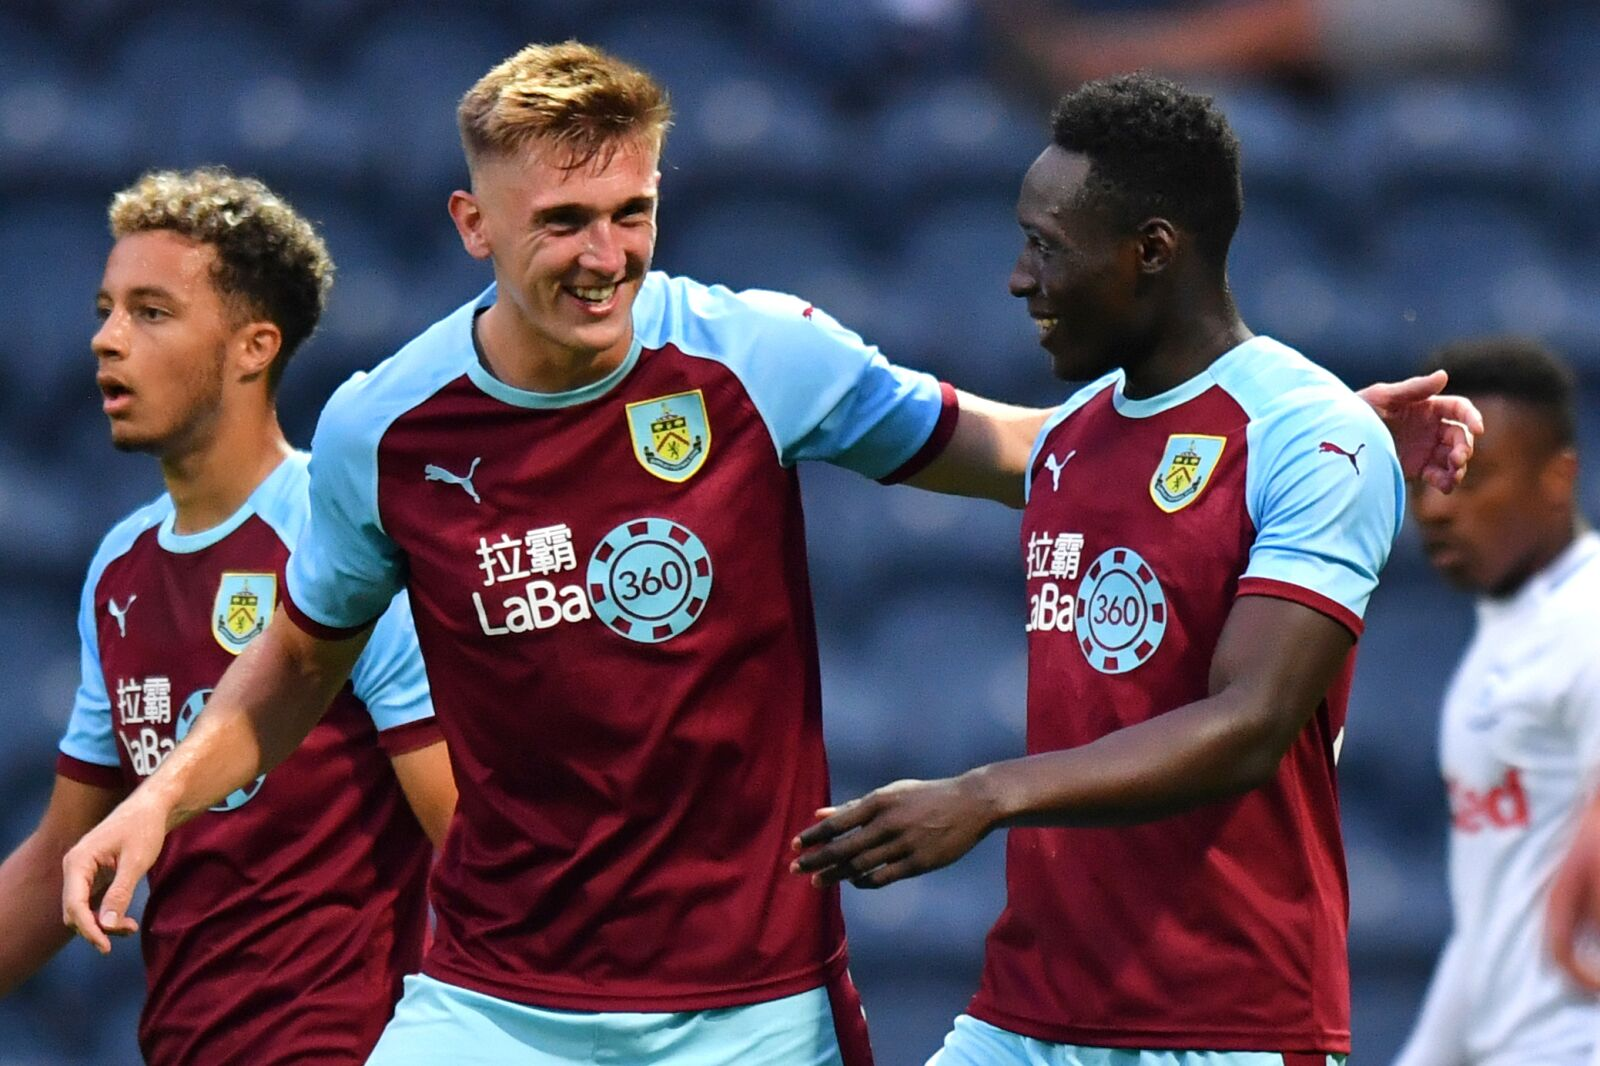 Burnley's Dan Agyei (right) celebrates scoring his side's first goal of the game with Burnley's Jimmy Dunne during a pre season friendly match at Deepdale, Preston. (Photo by Anthony Devlin/PA Images via Getty Images)